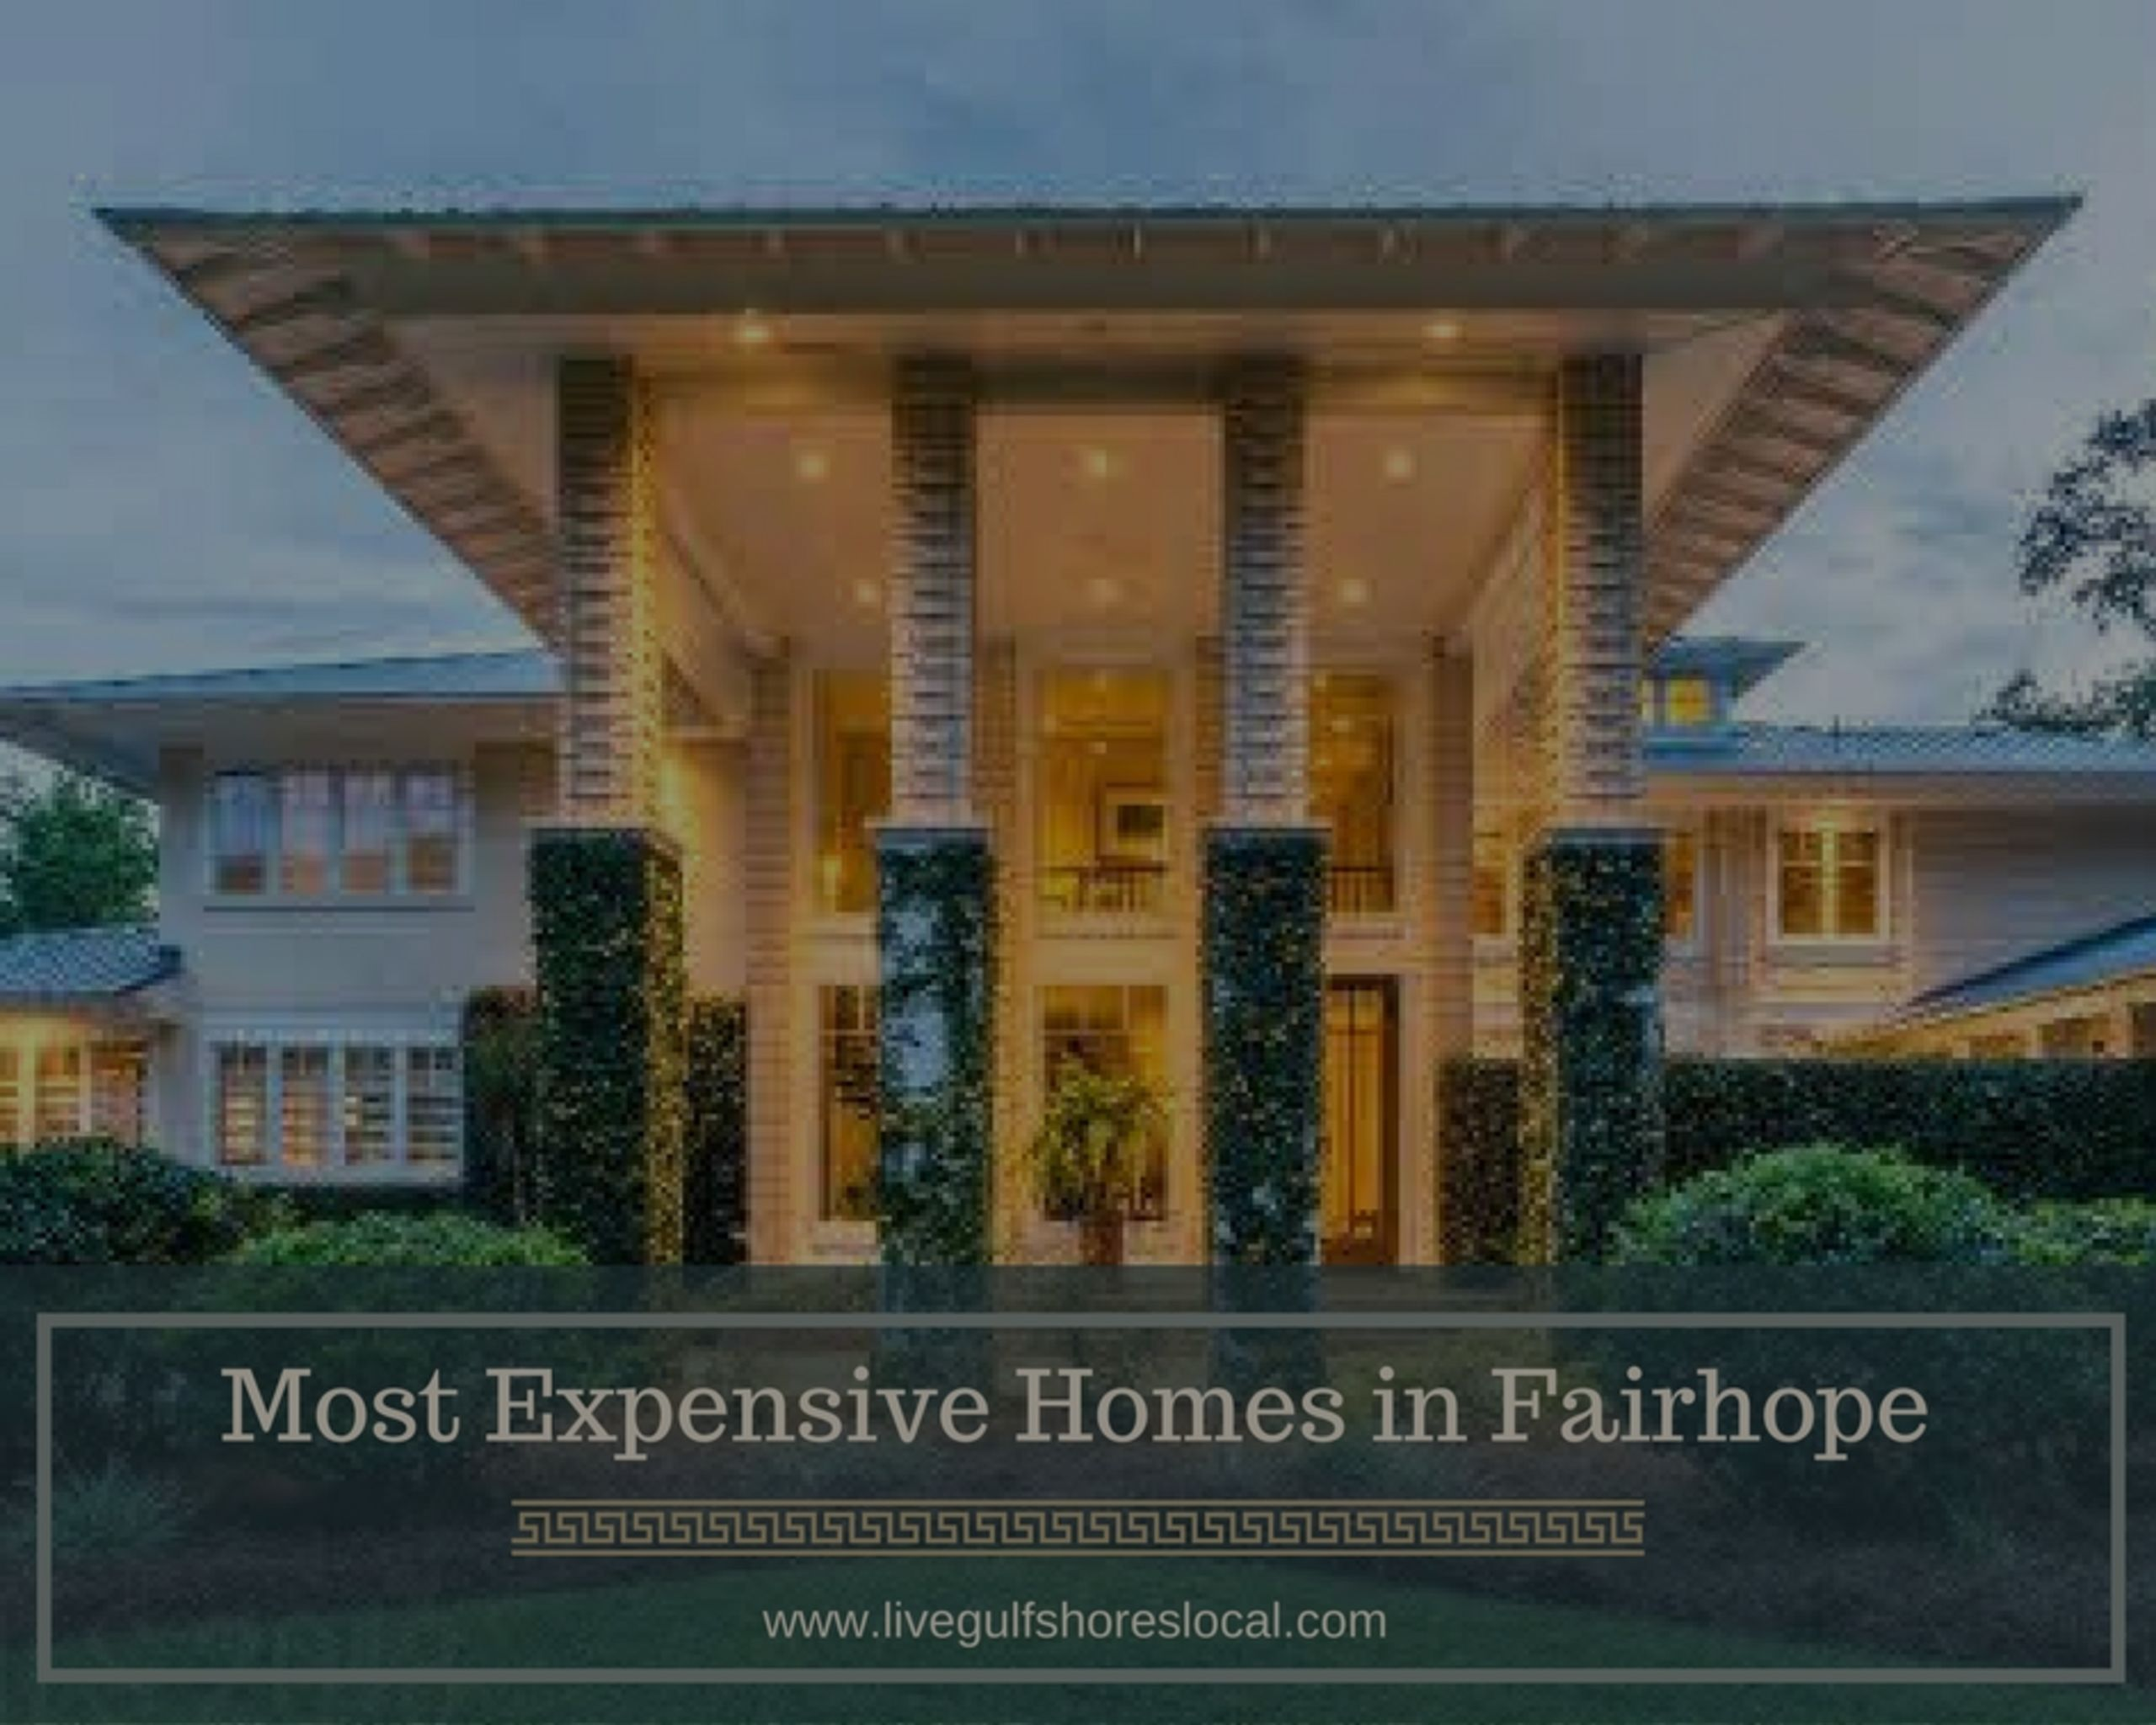 Top 5 Most Expensive Homes in Fairhope